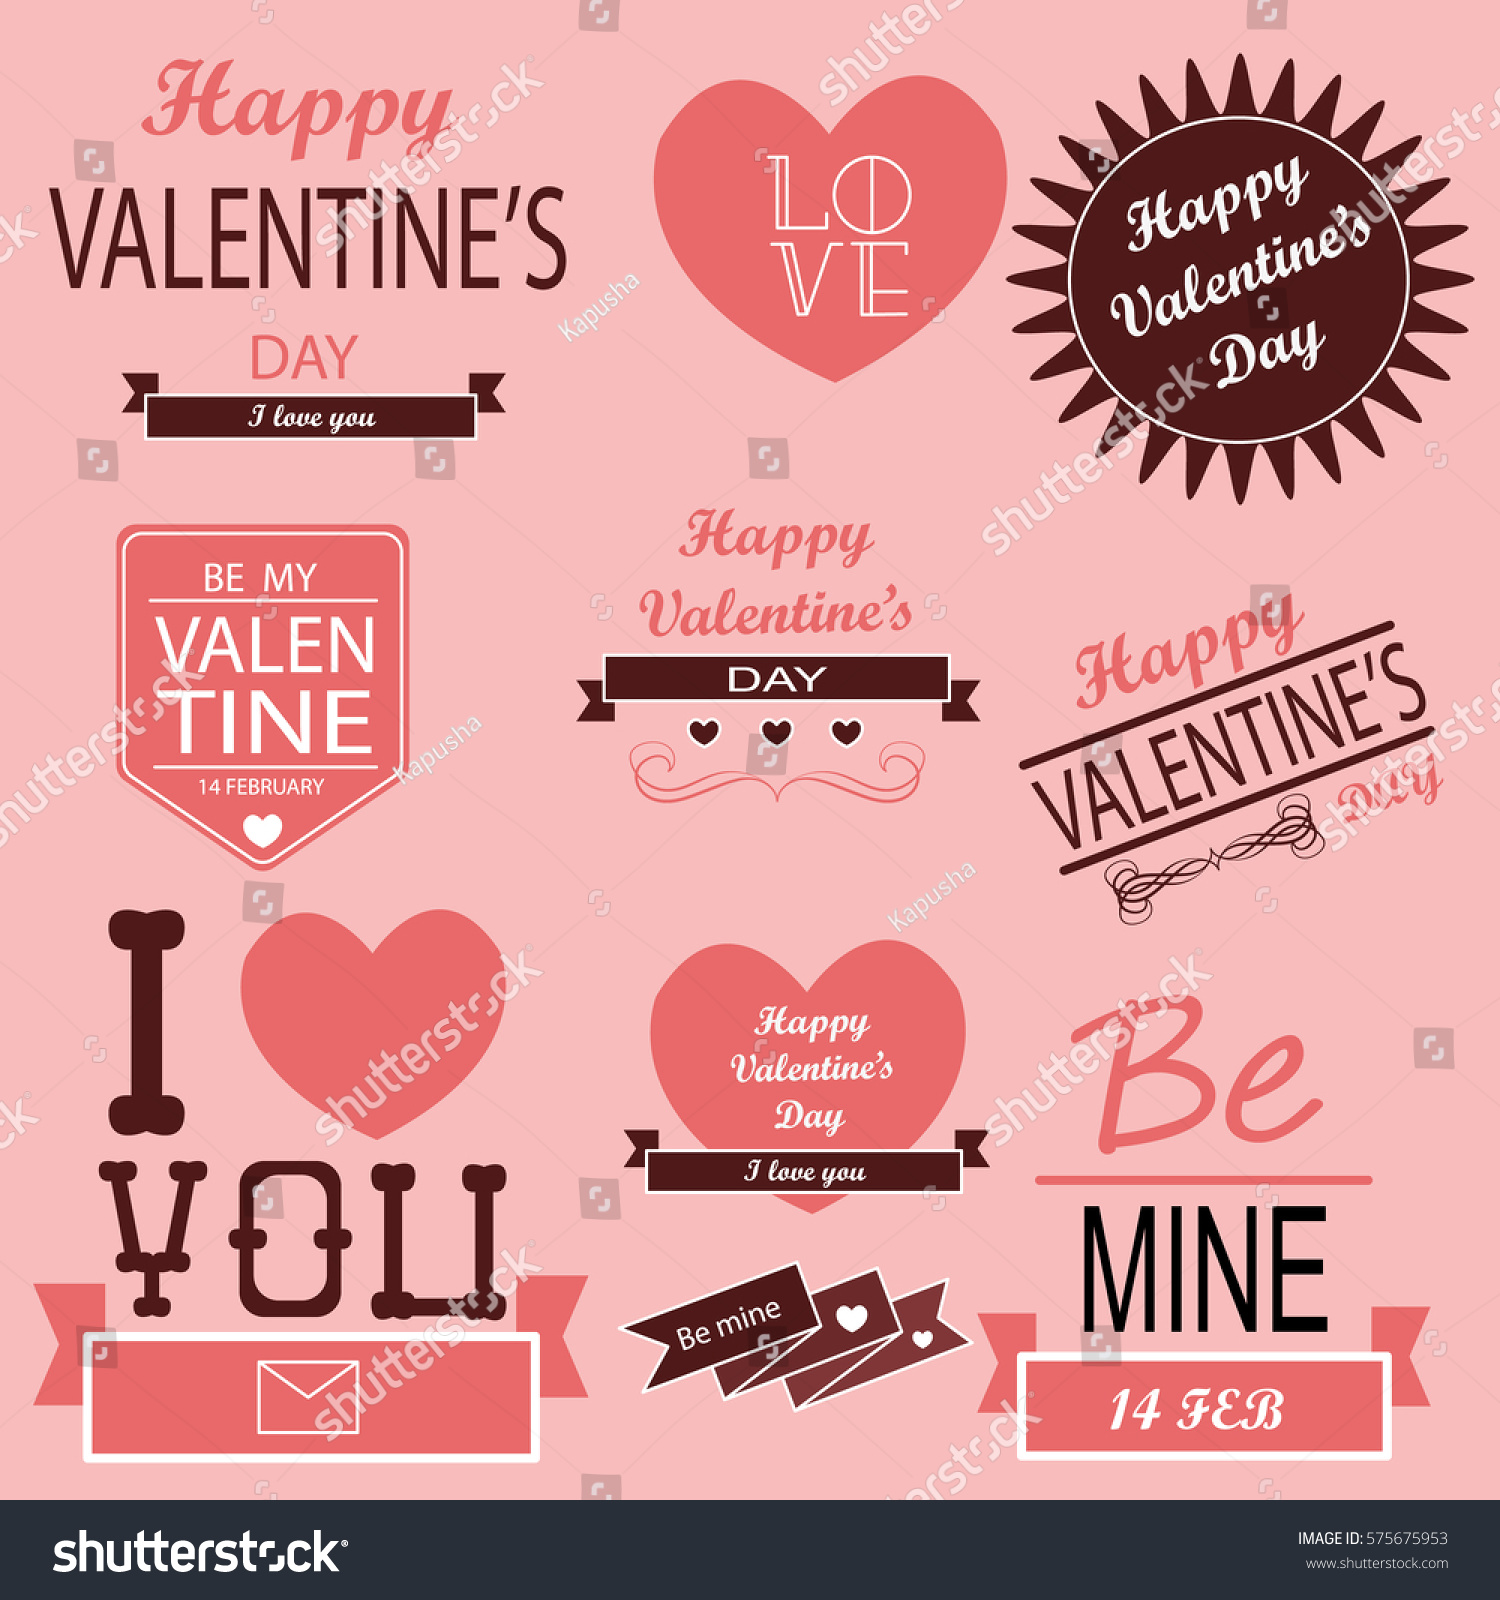 valentines day posters set - Valentines Posters